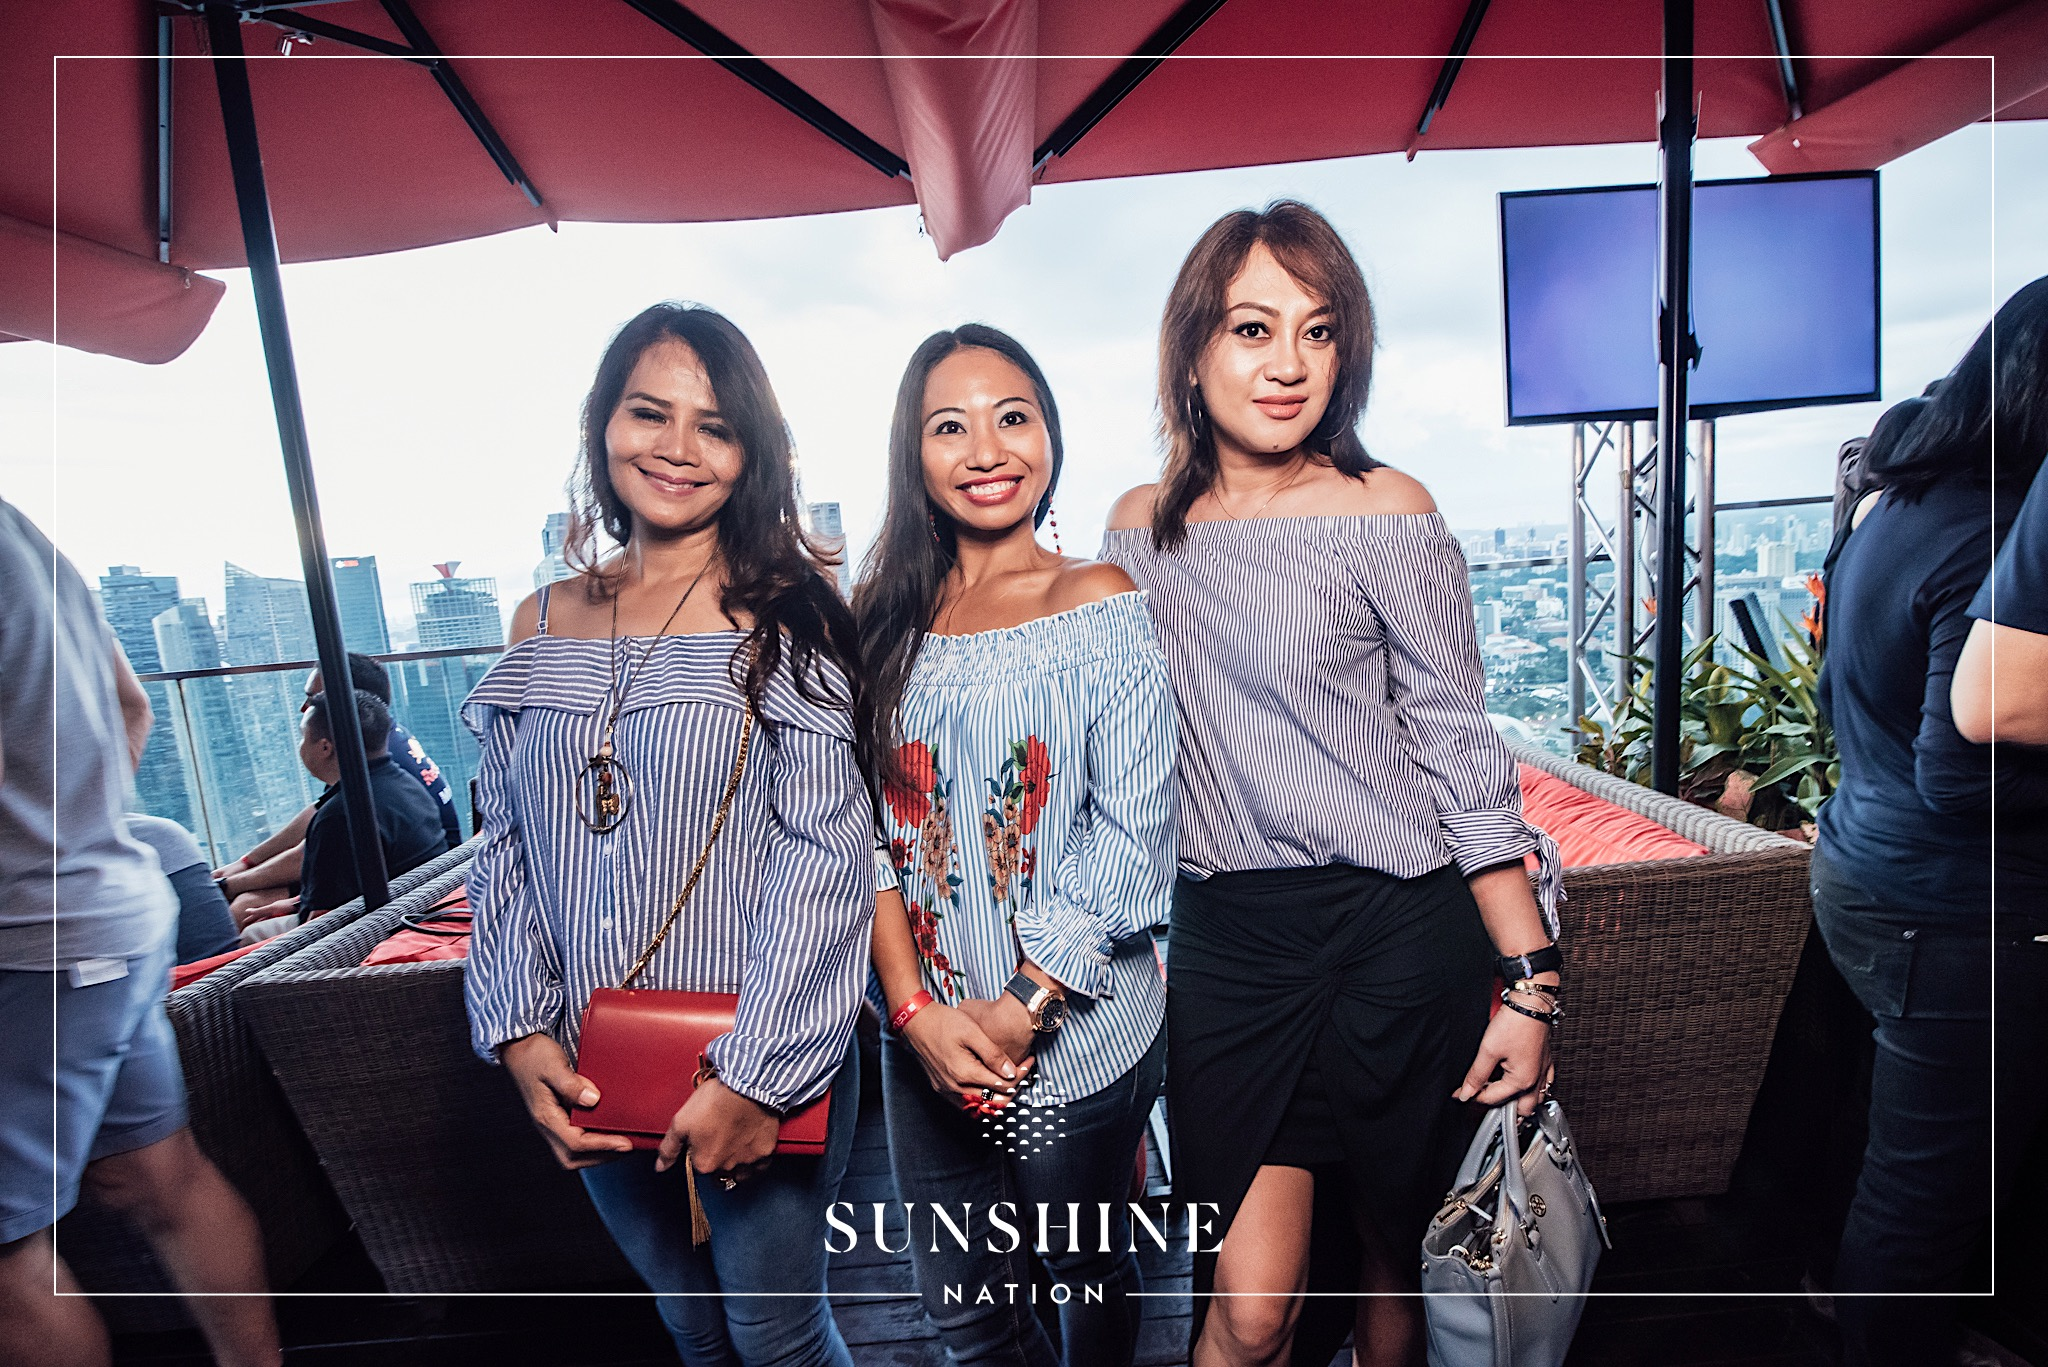 17092017_SunshineNation_Colossal064_Watermarked.jpg